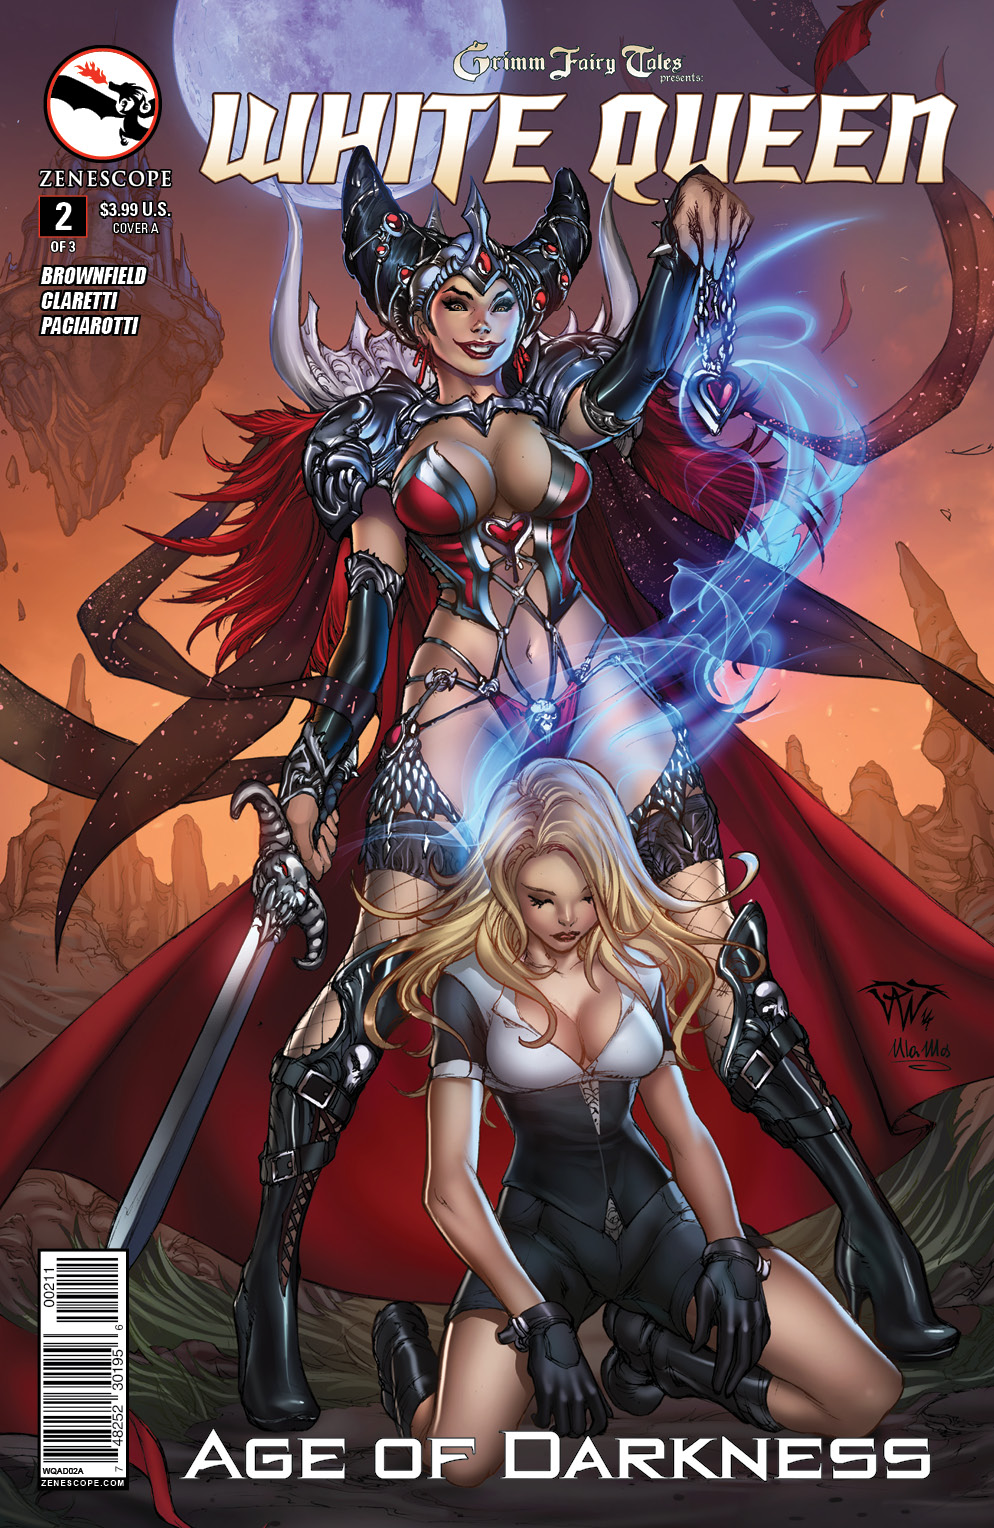 WhiteQueen_AOD_02_cover A